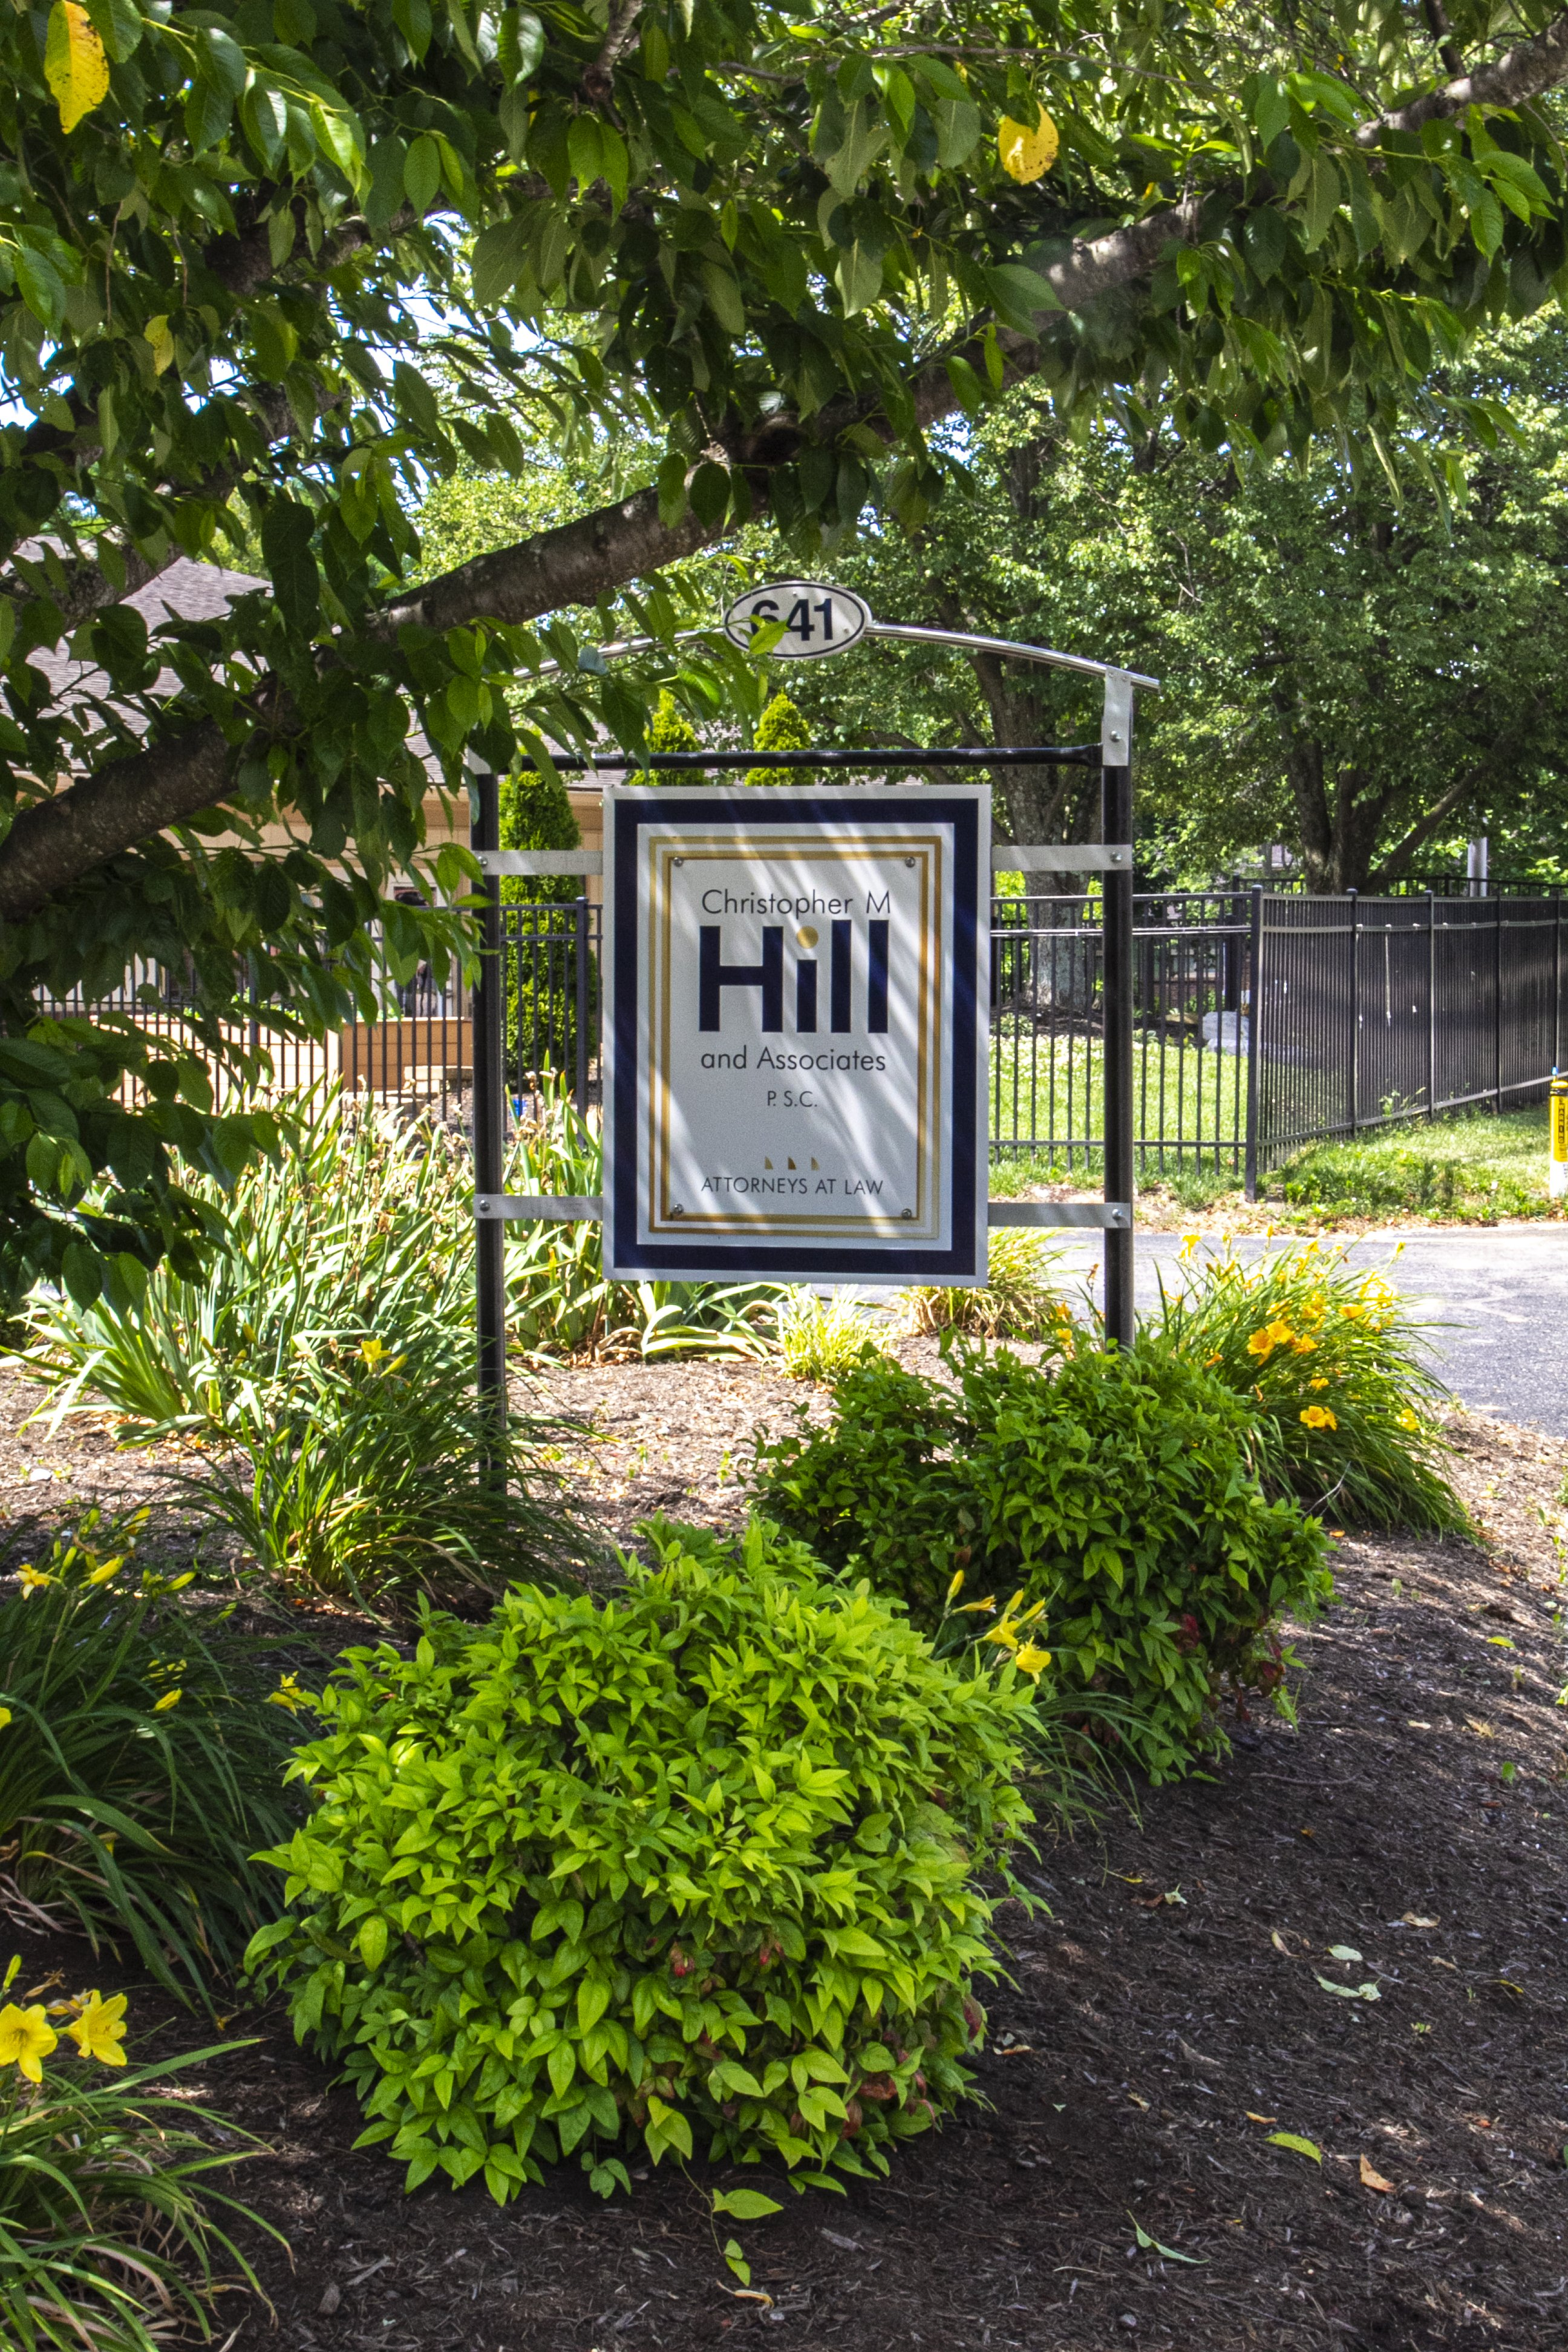 Christopher Hill and Associates, PSC